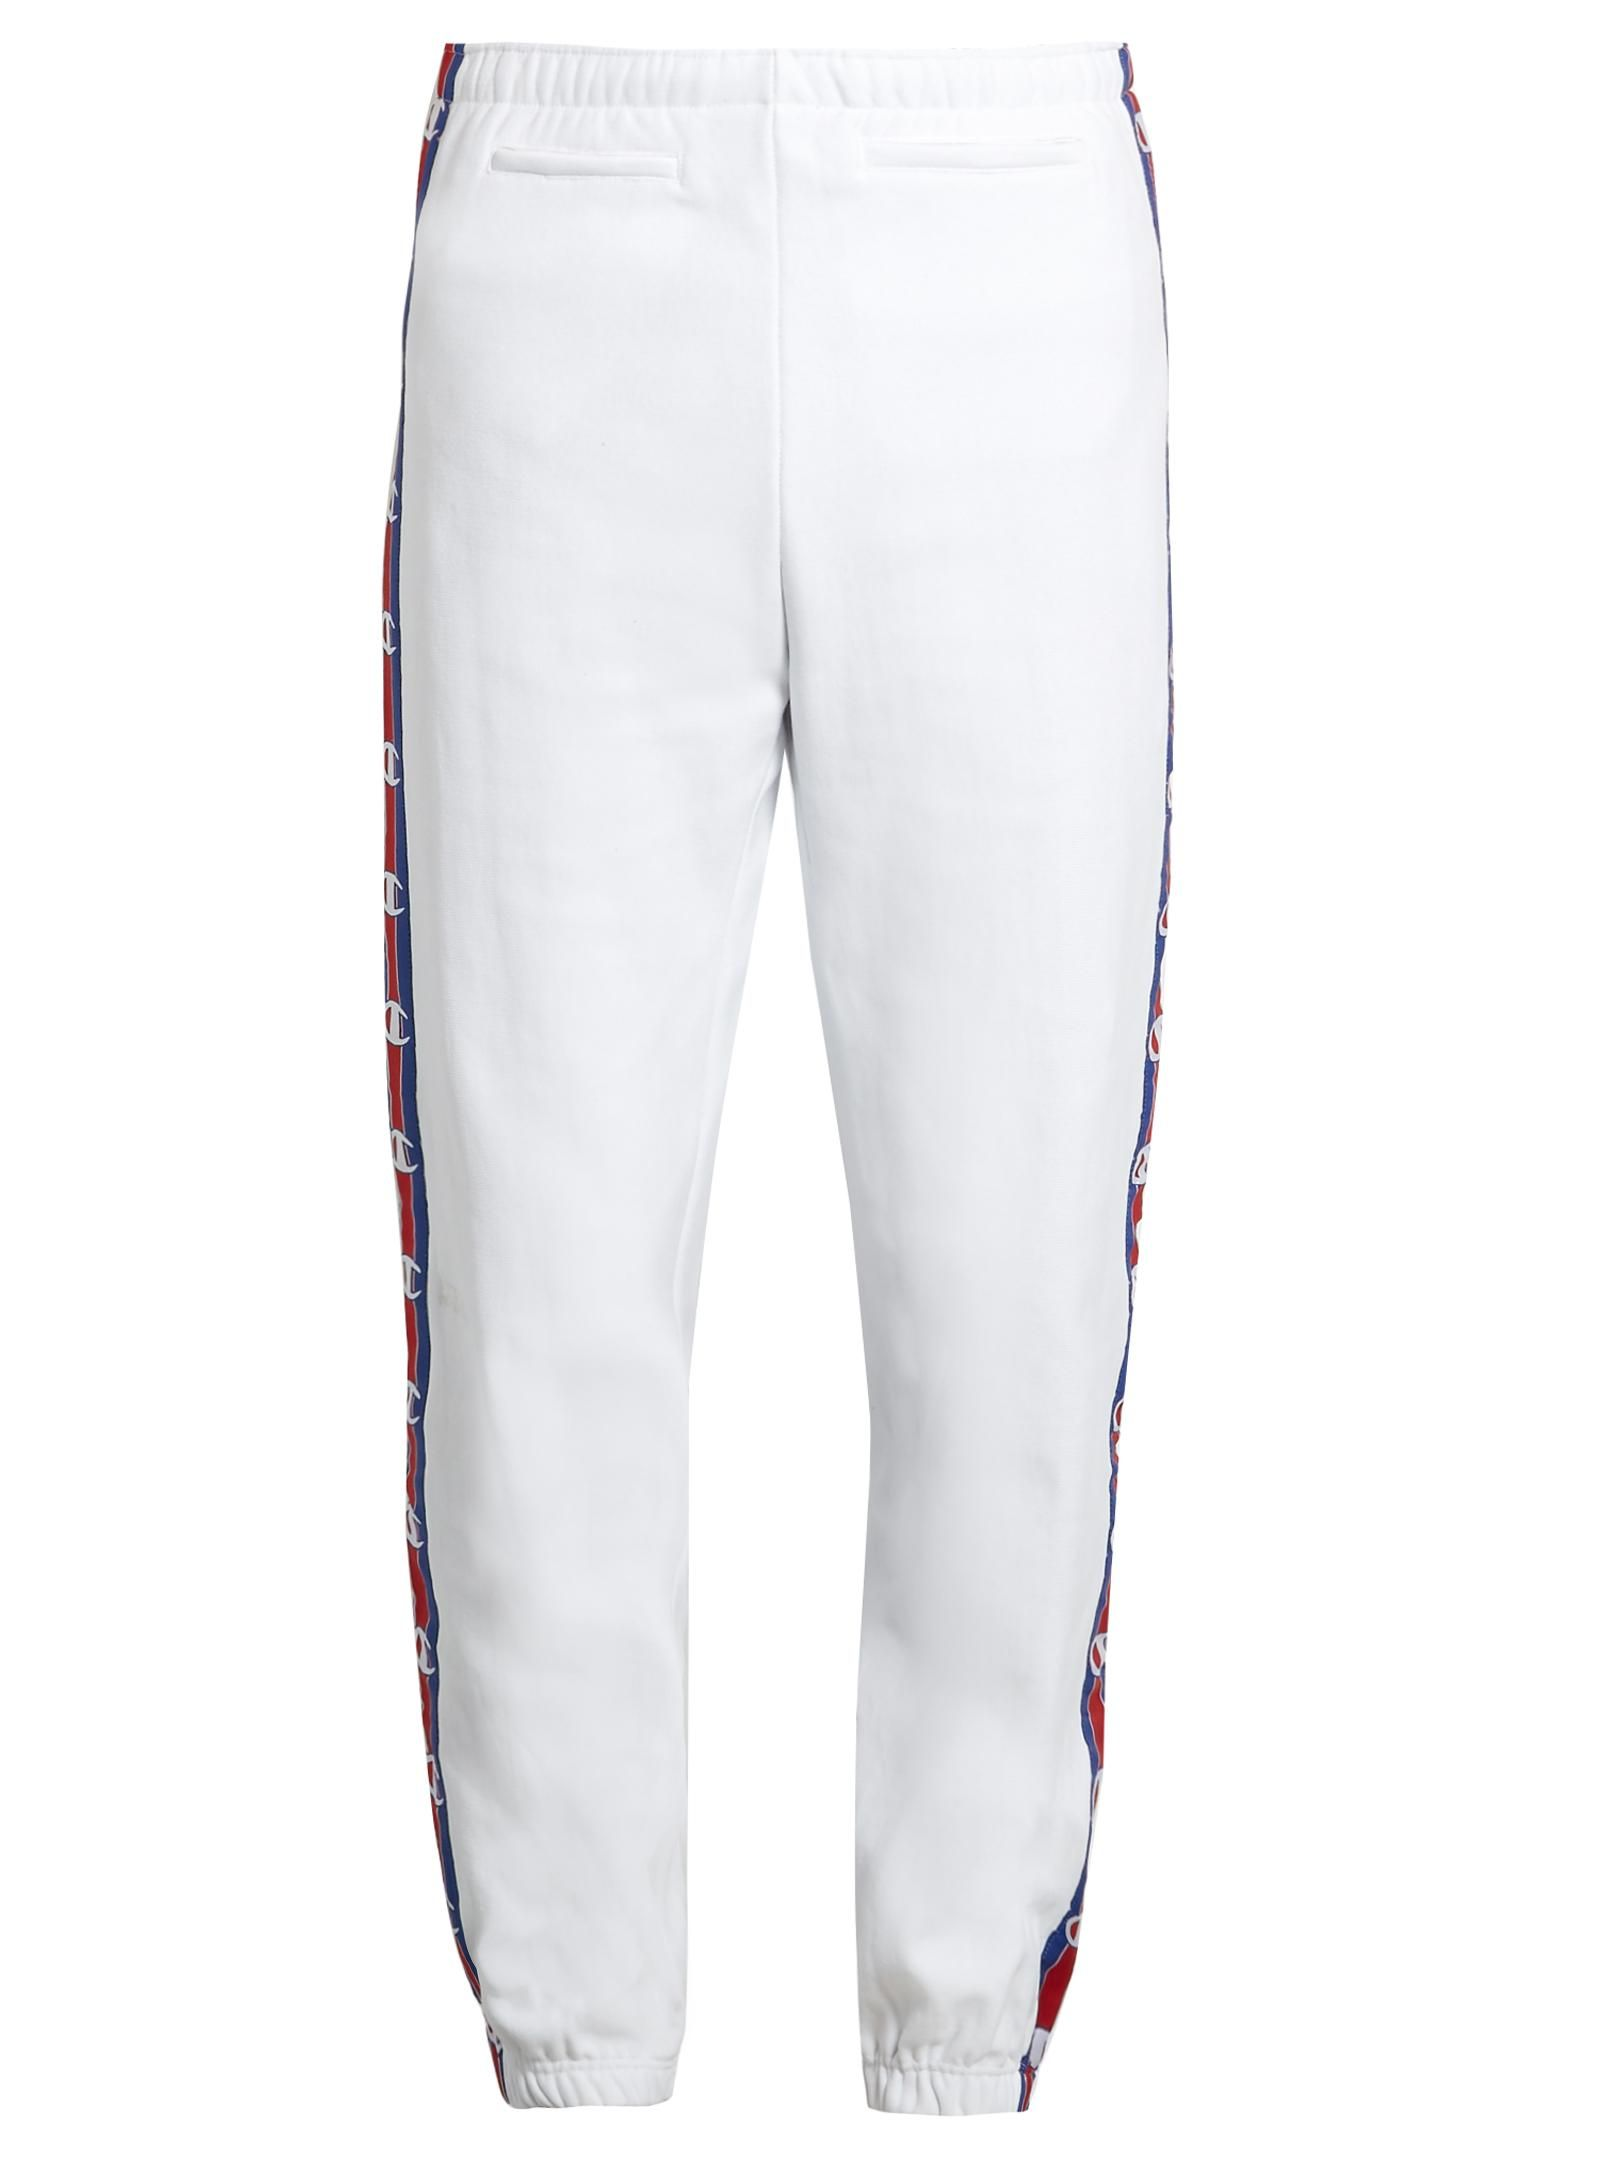 Vetements X Champion - White sweatpants